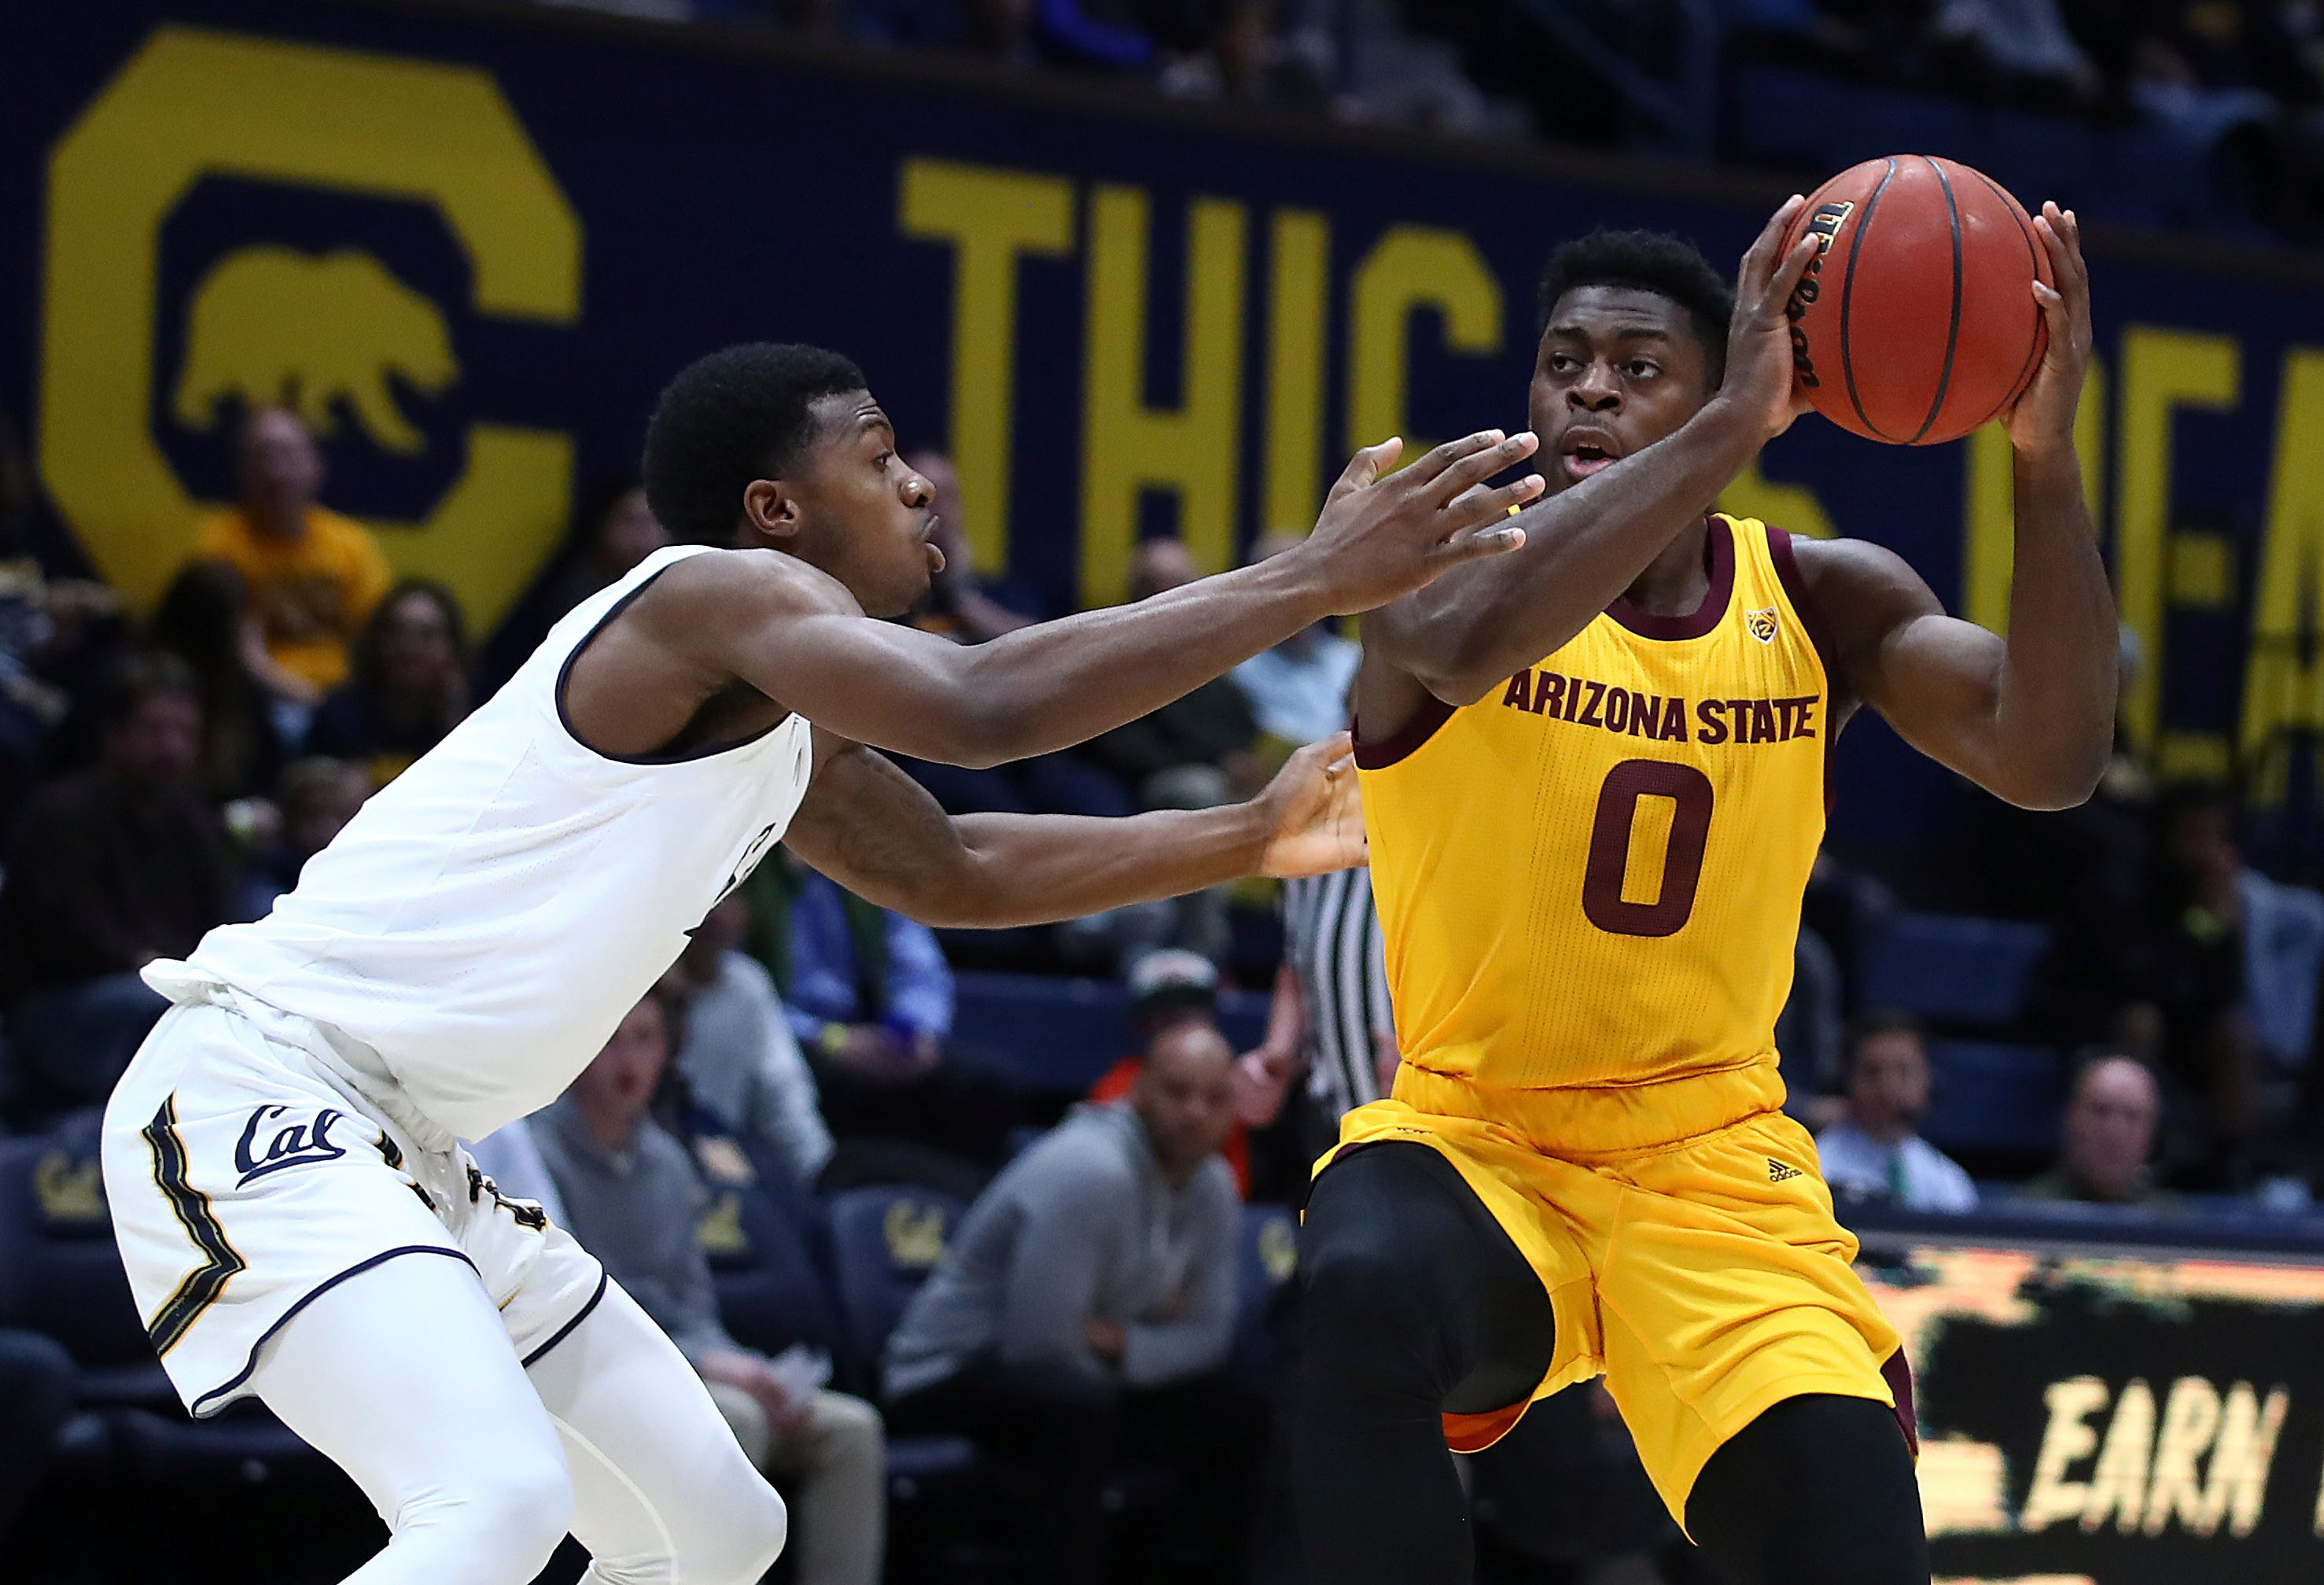 Arizona State's Zylan Cheatham questionable for game at Stanford